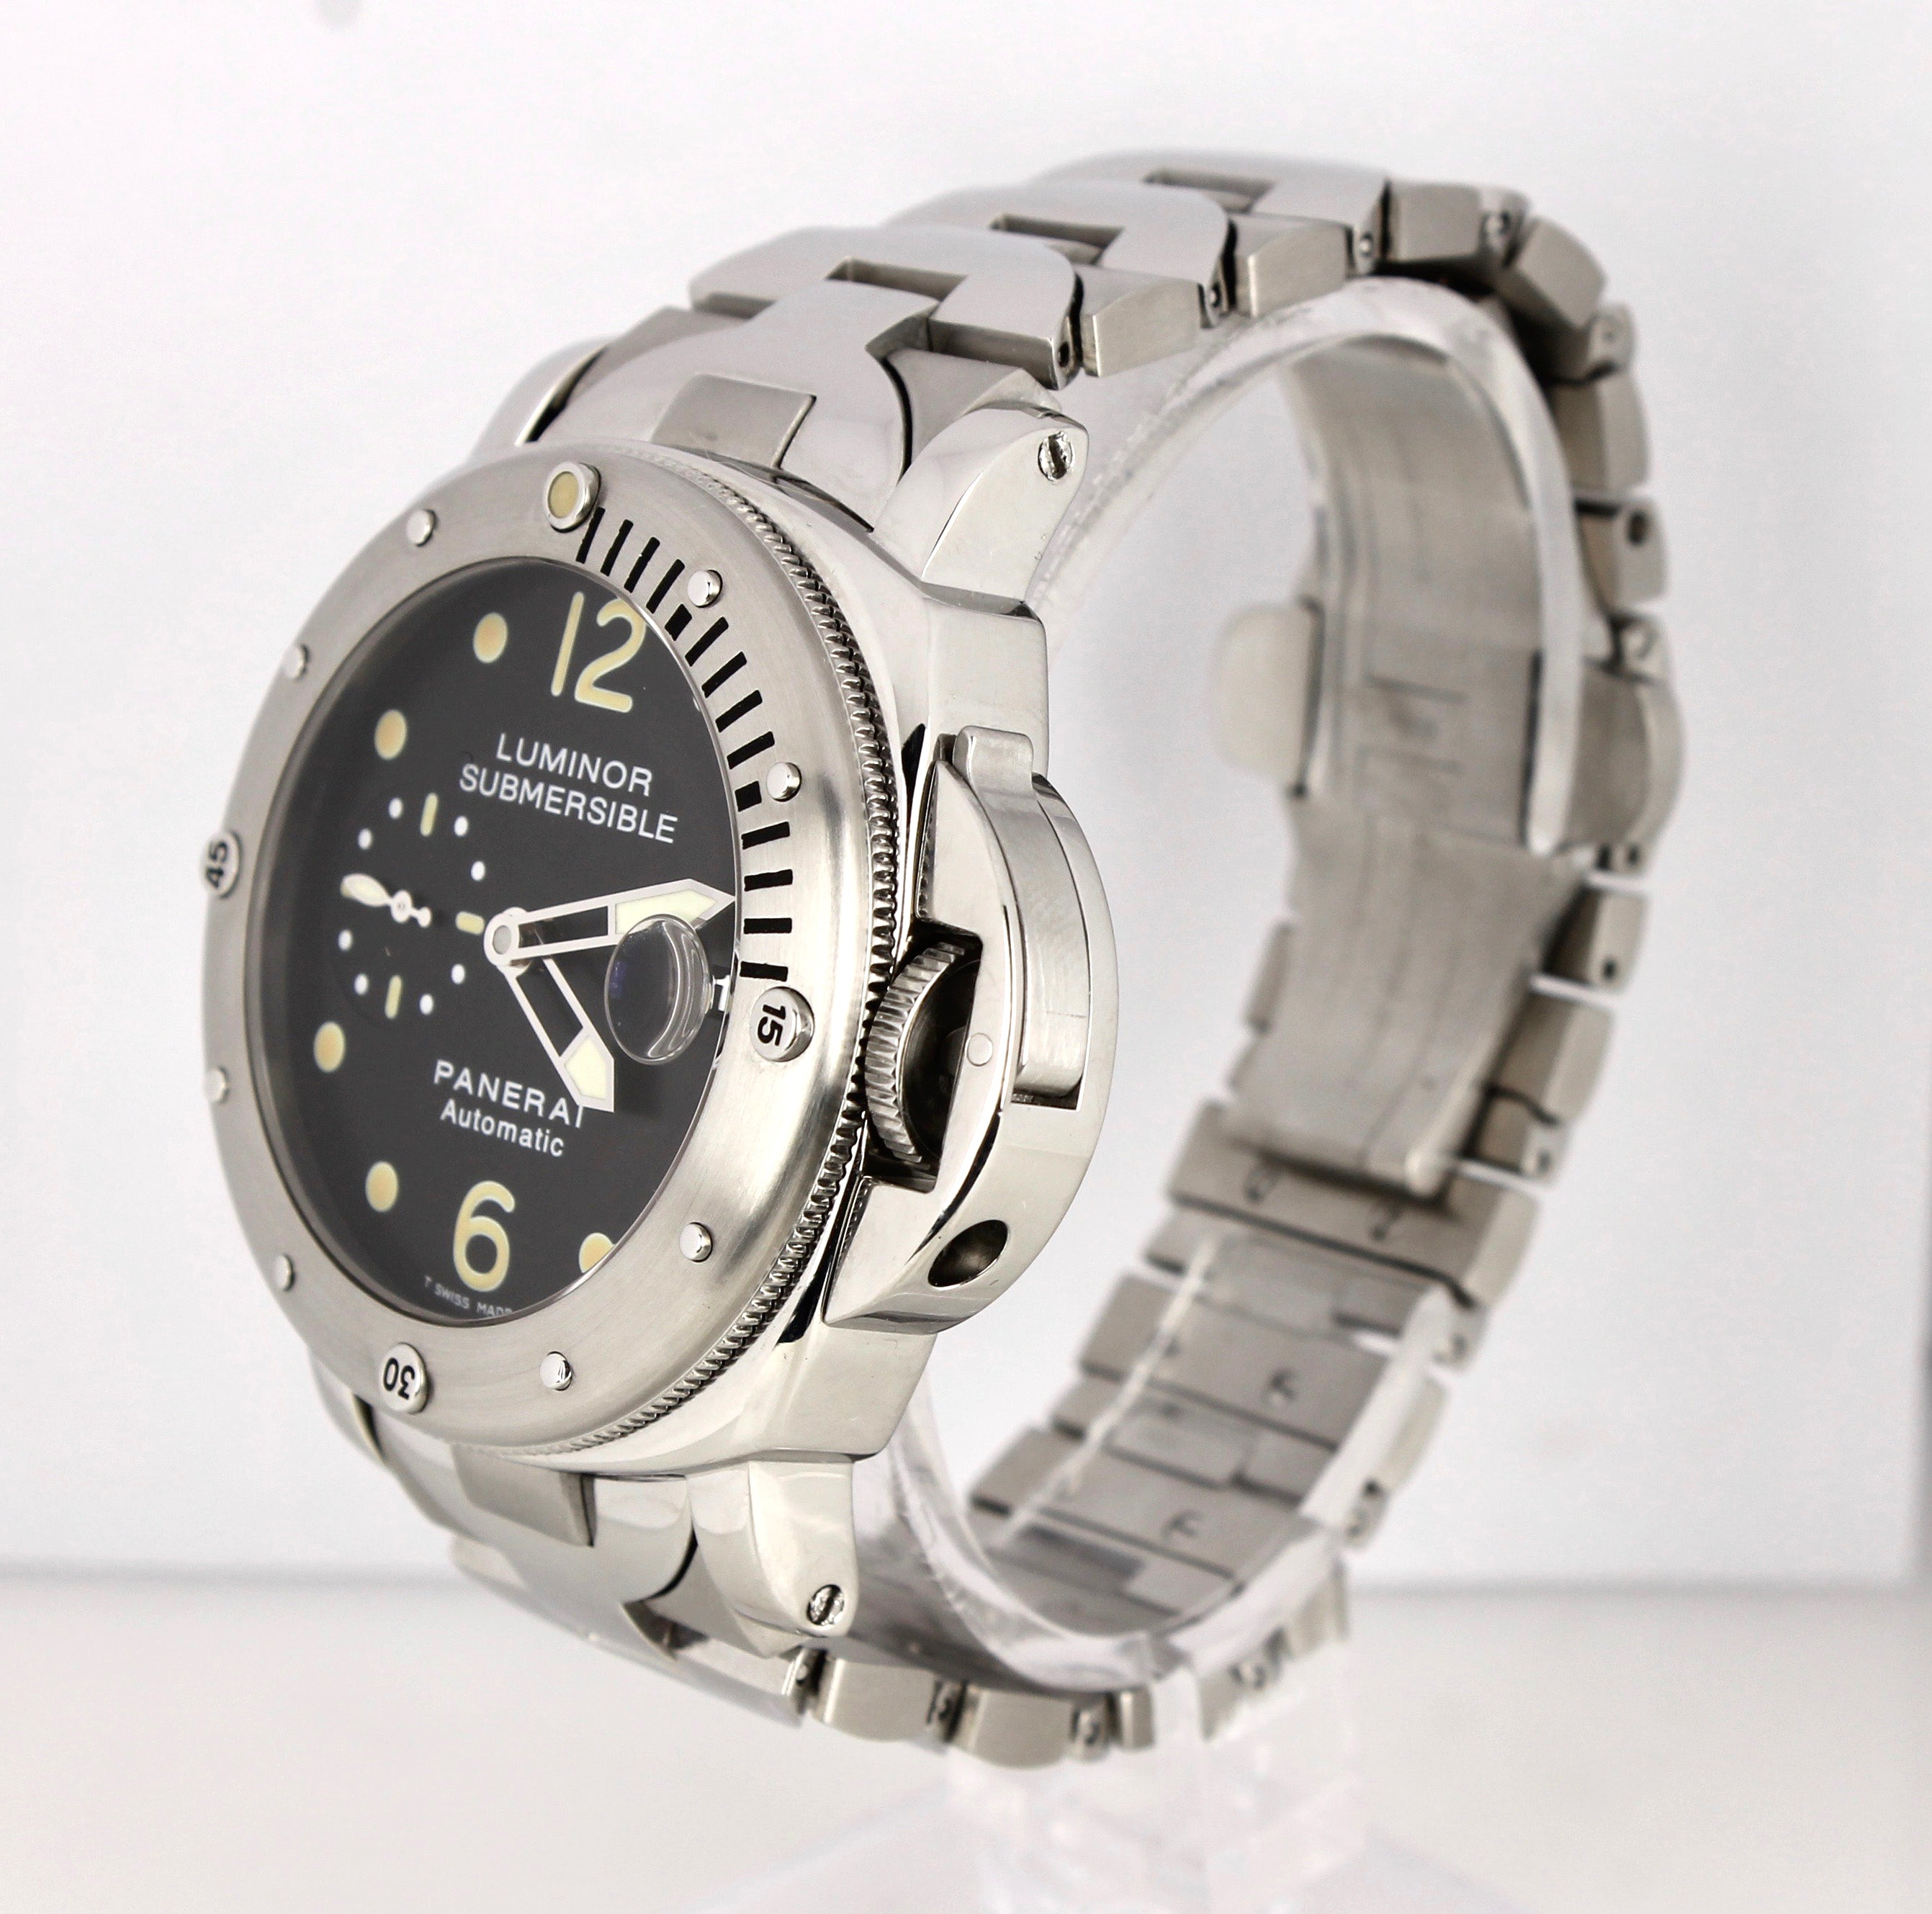 Panerai PAM 24 44mm Luminor Submersible Patina Steel Automatic Watch PAM00024